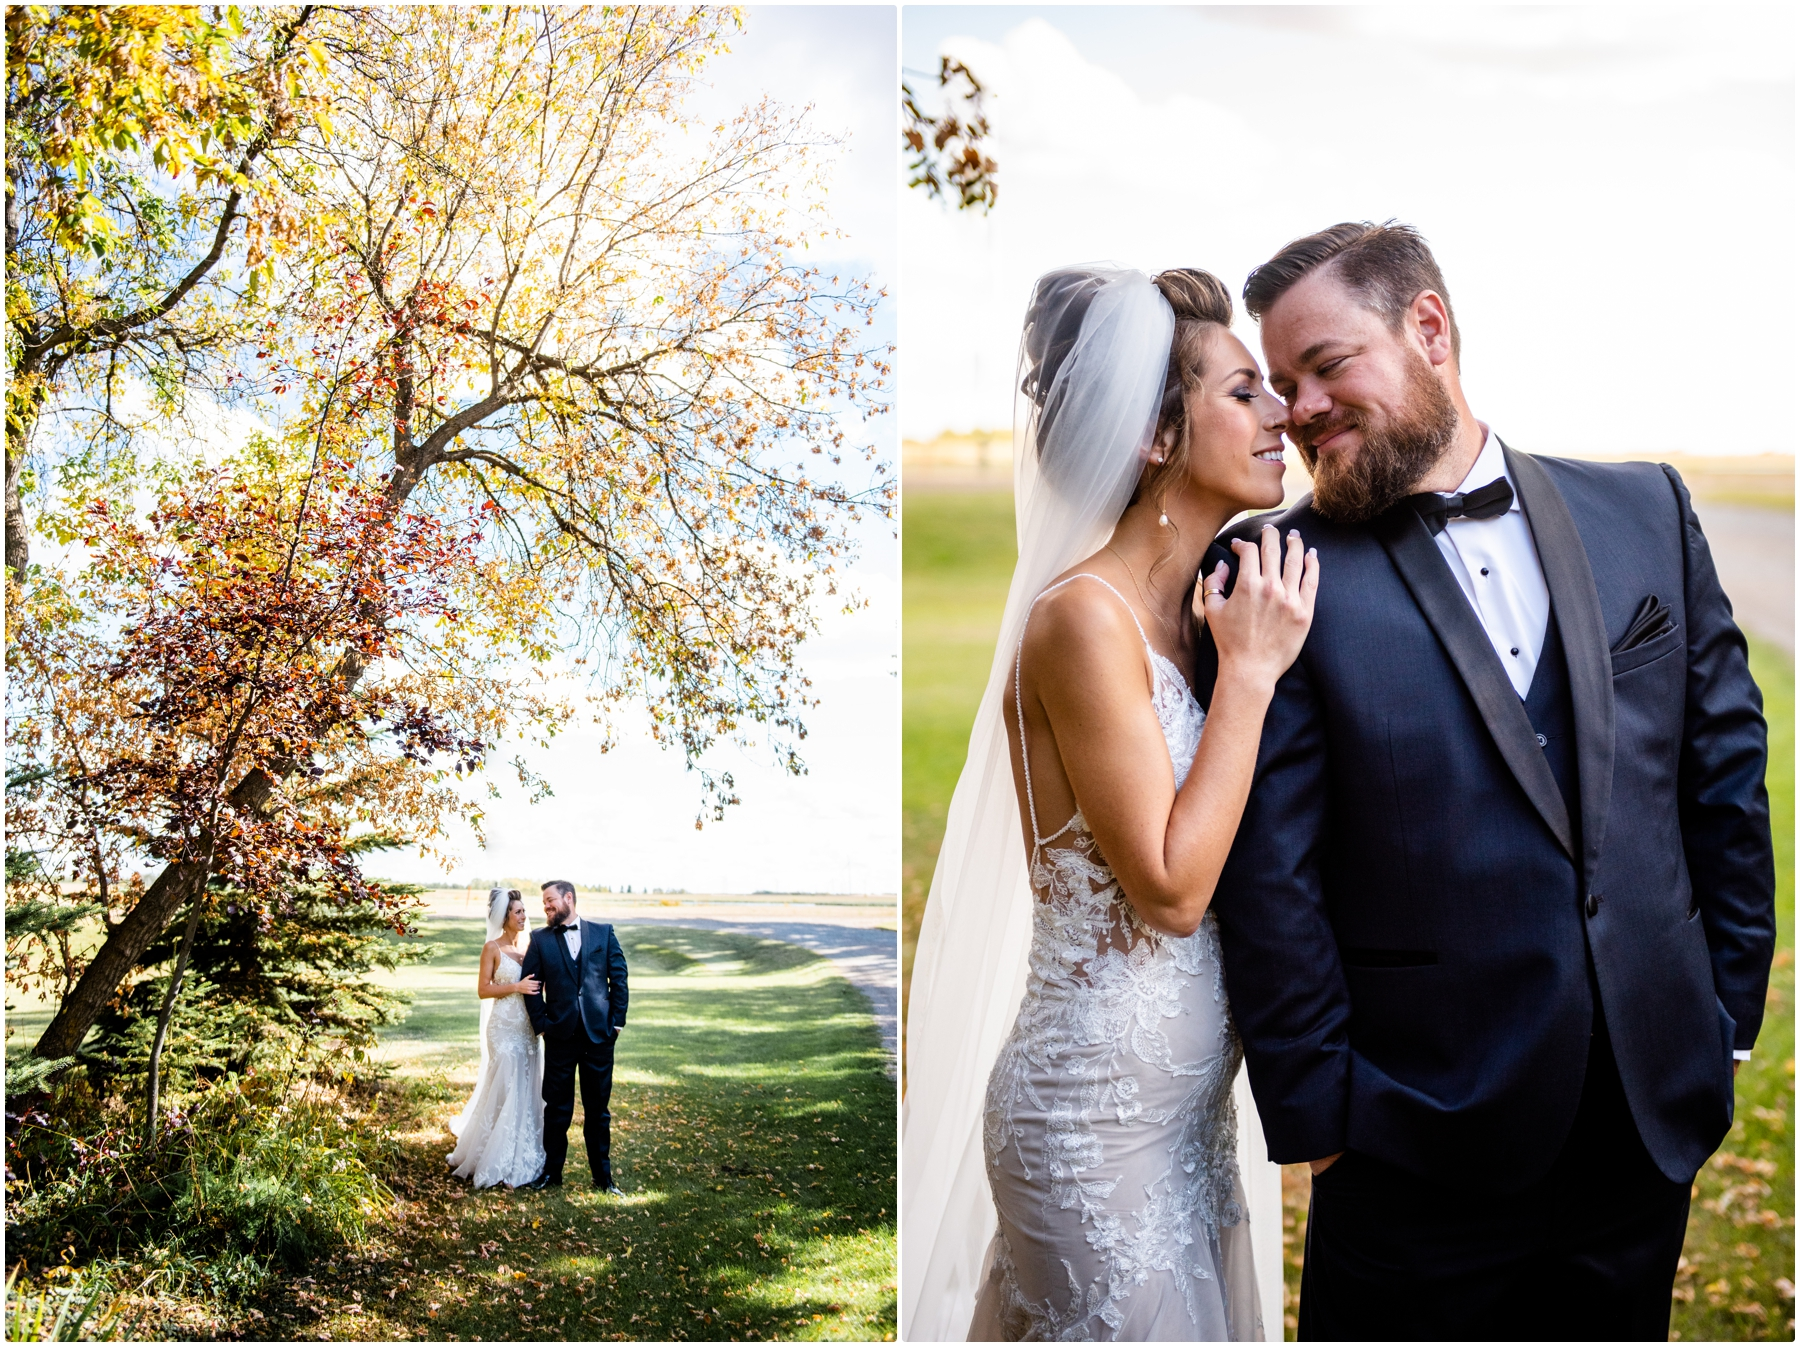 Bride & Groom Photographer - Sweet Haven Barn